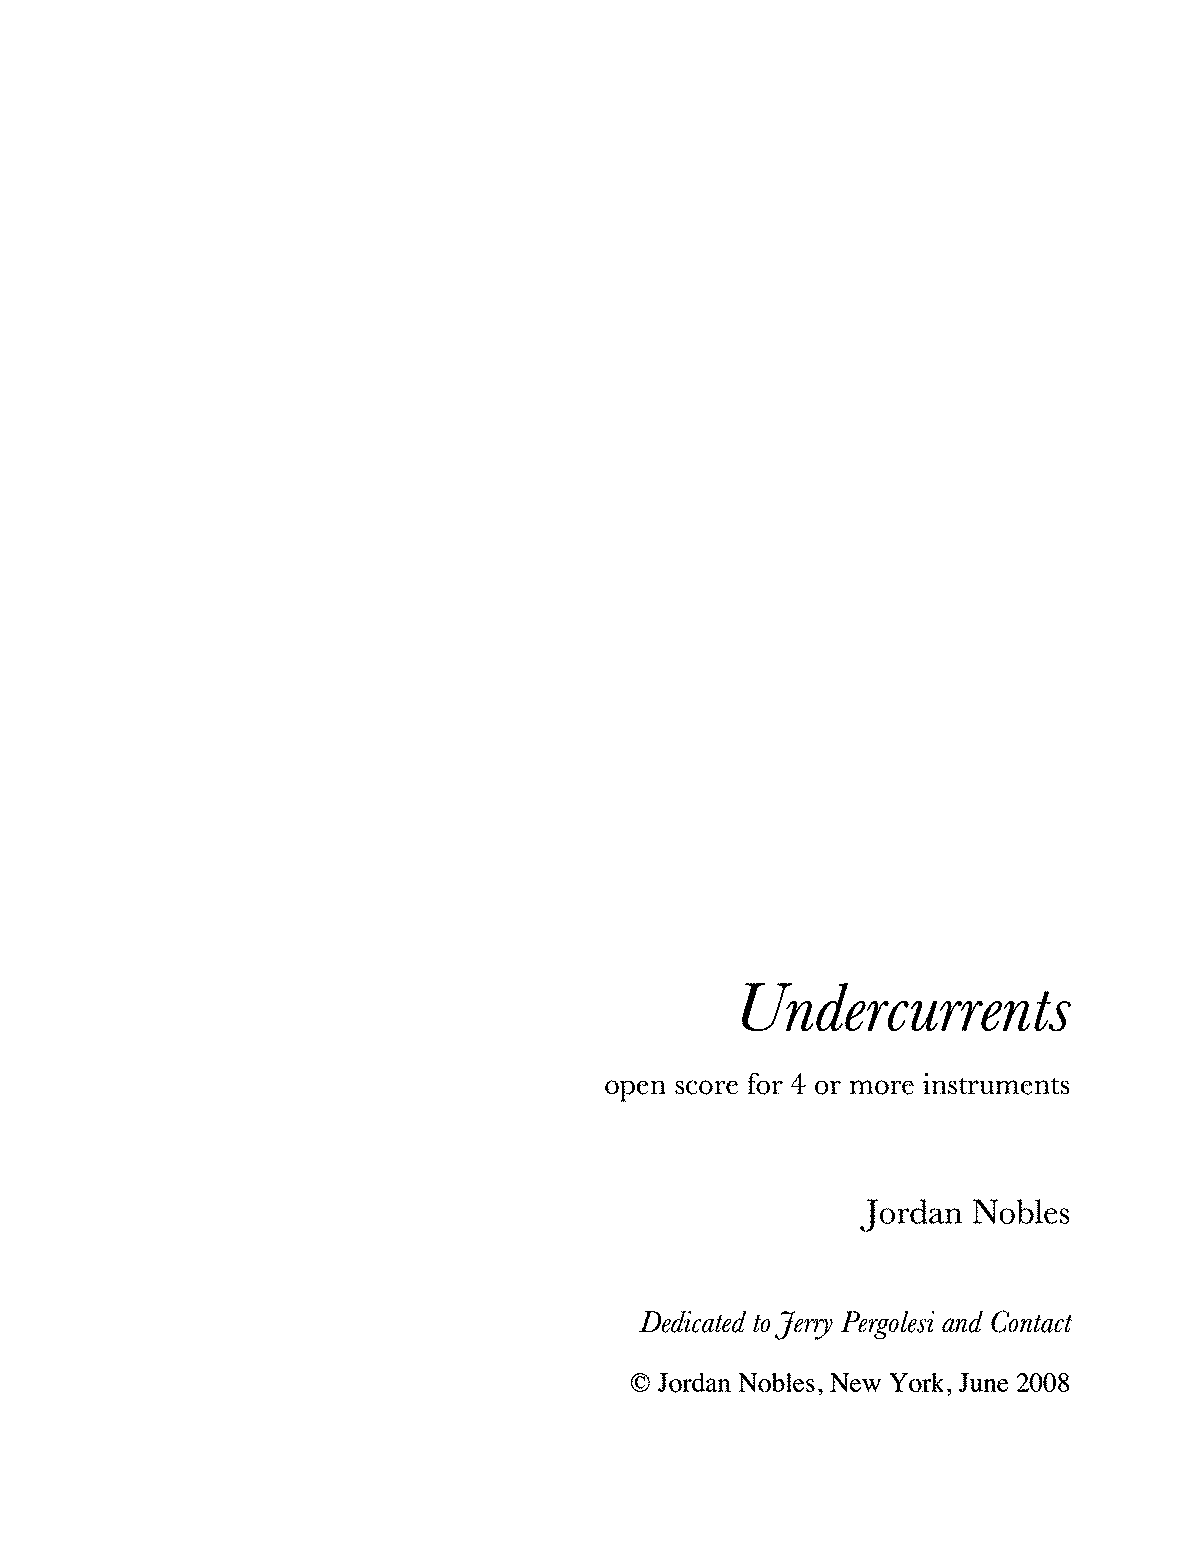 PMLP716204-Undercurrents.pdf